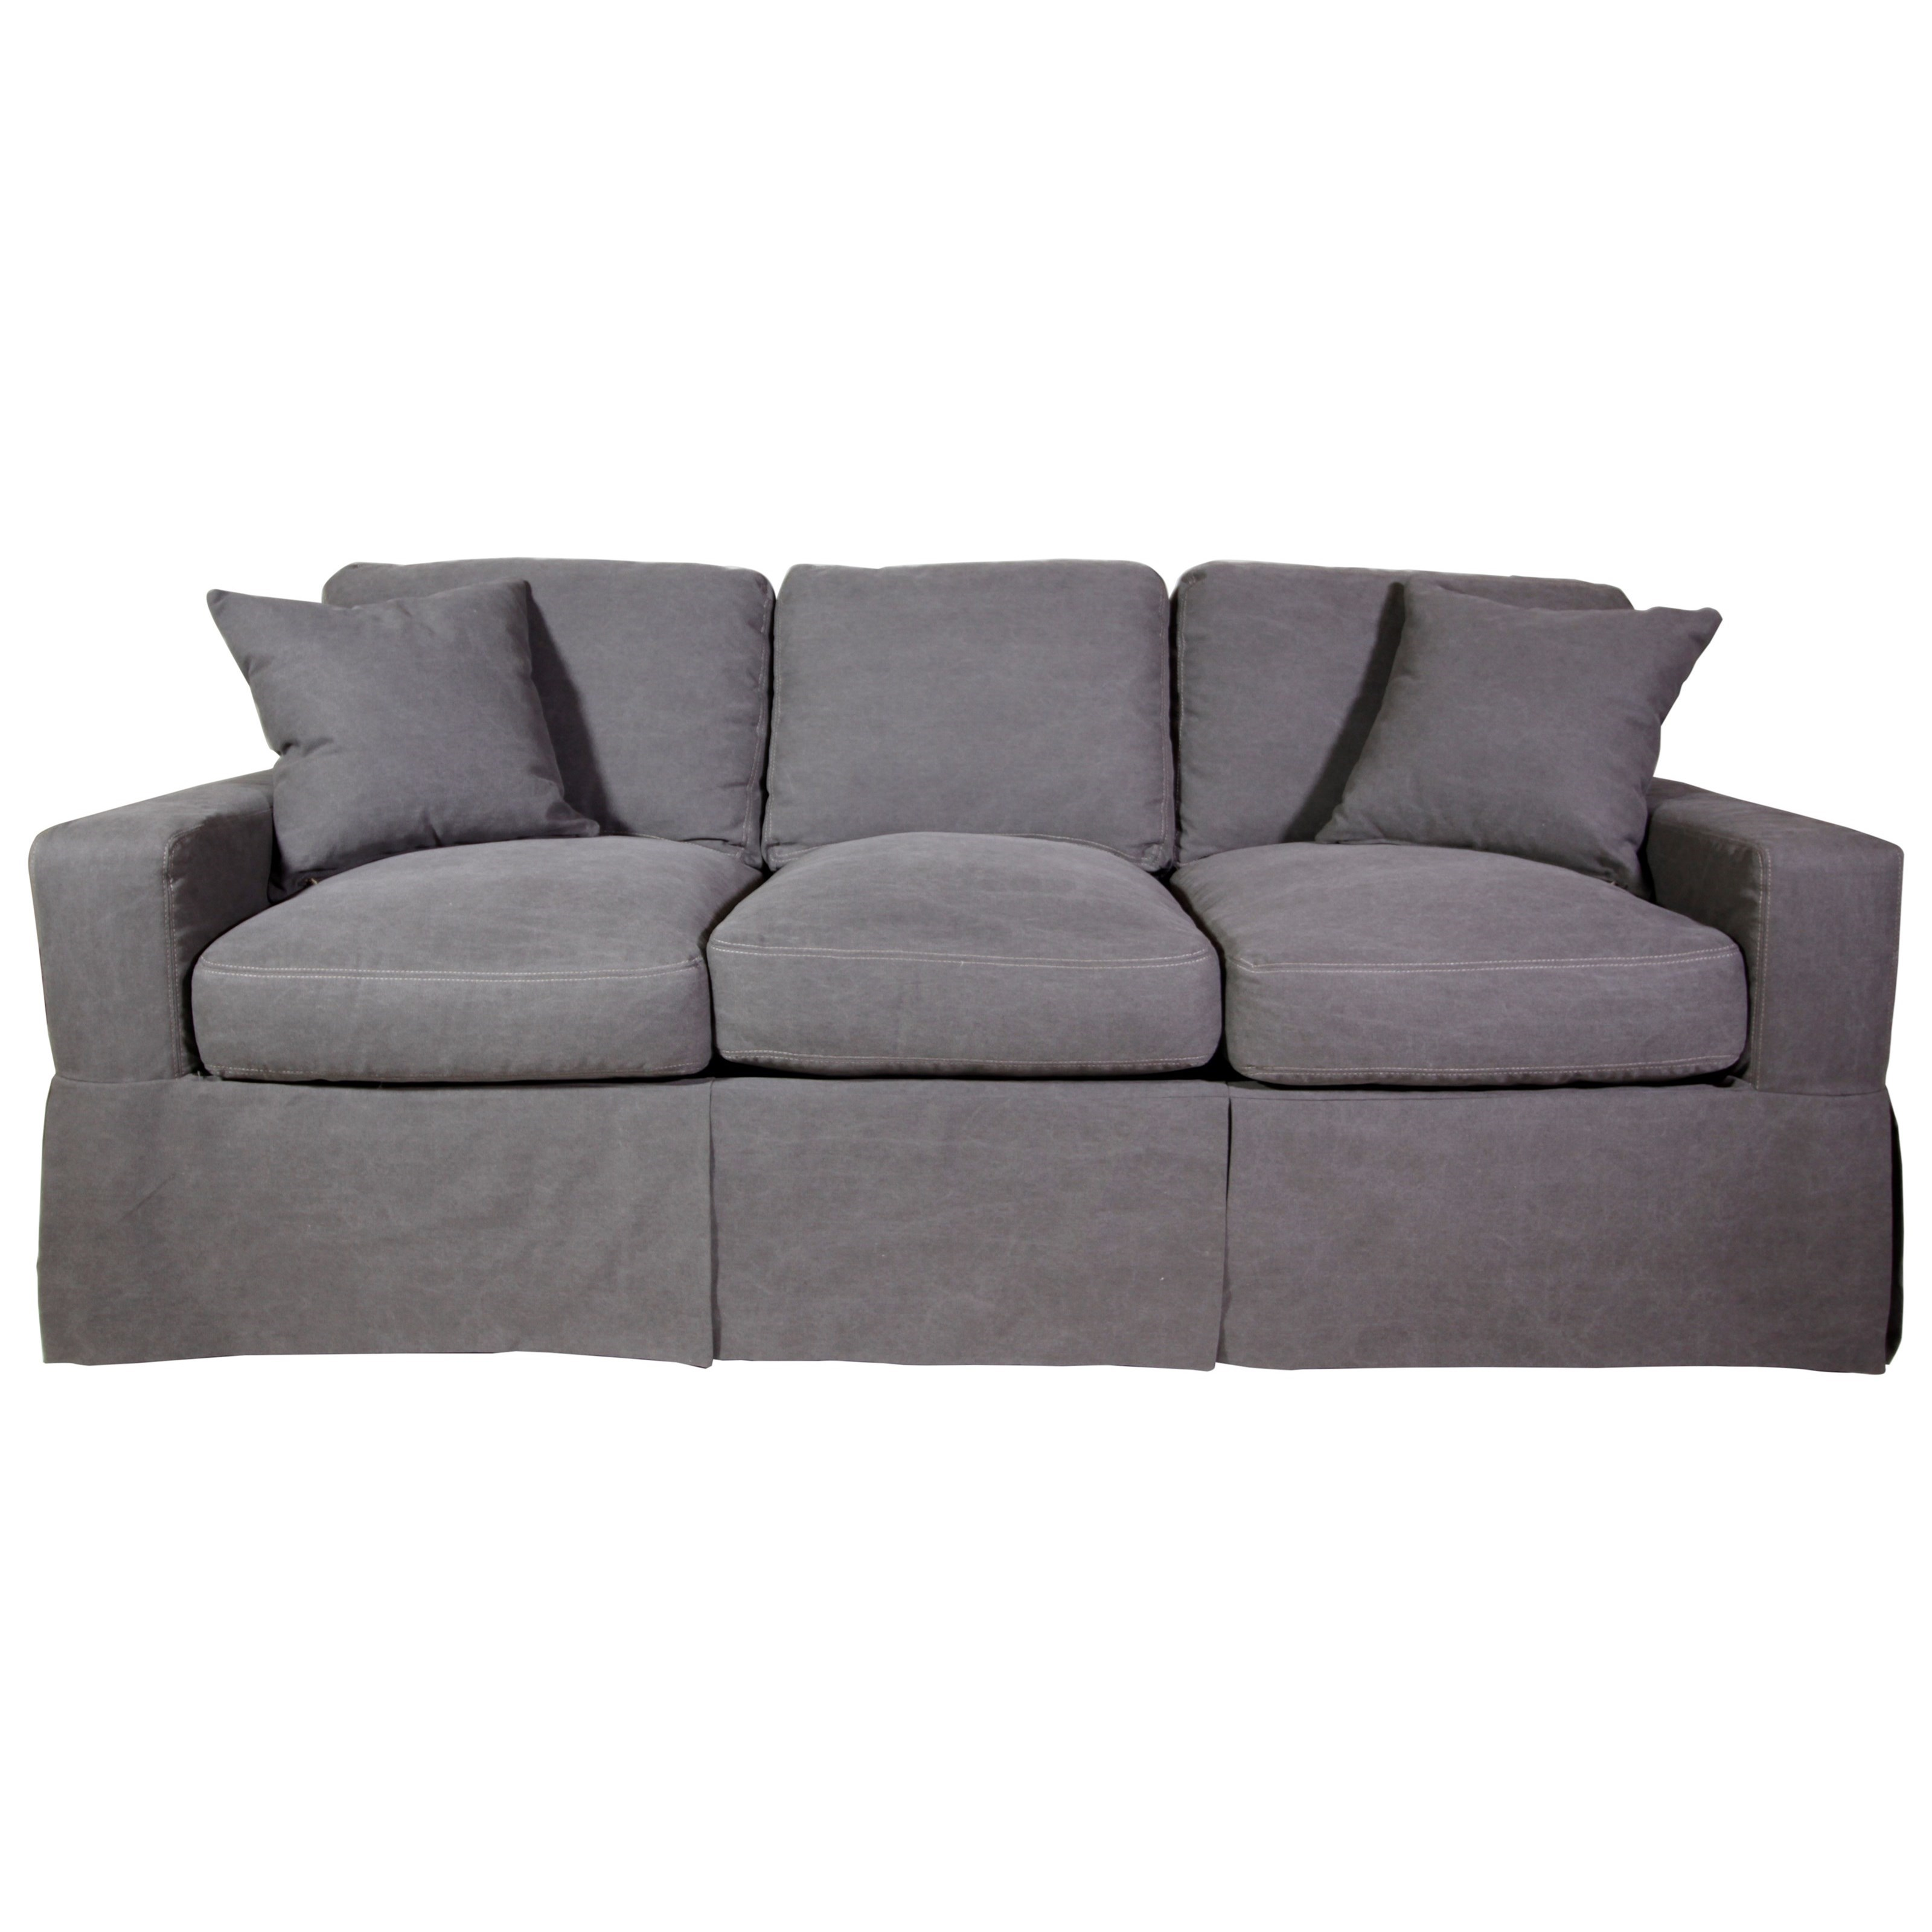 Sarah Randolph Designs 1205 Sofa - Item Number: 1205-00 4030-96